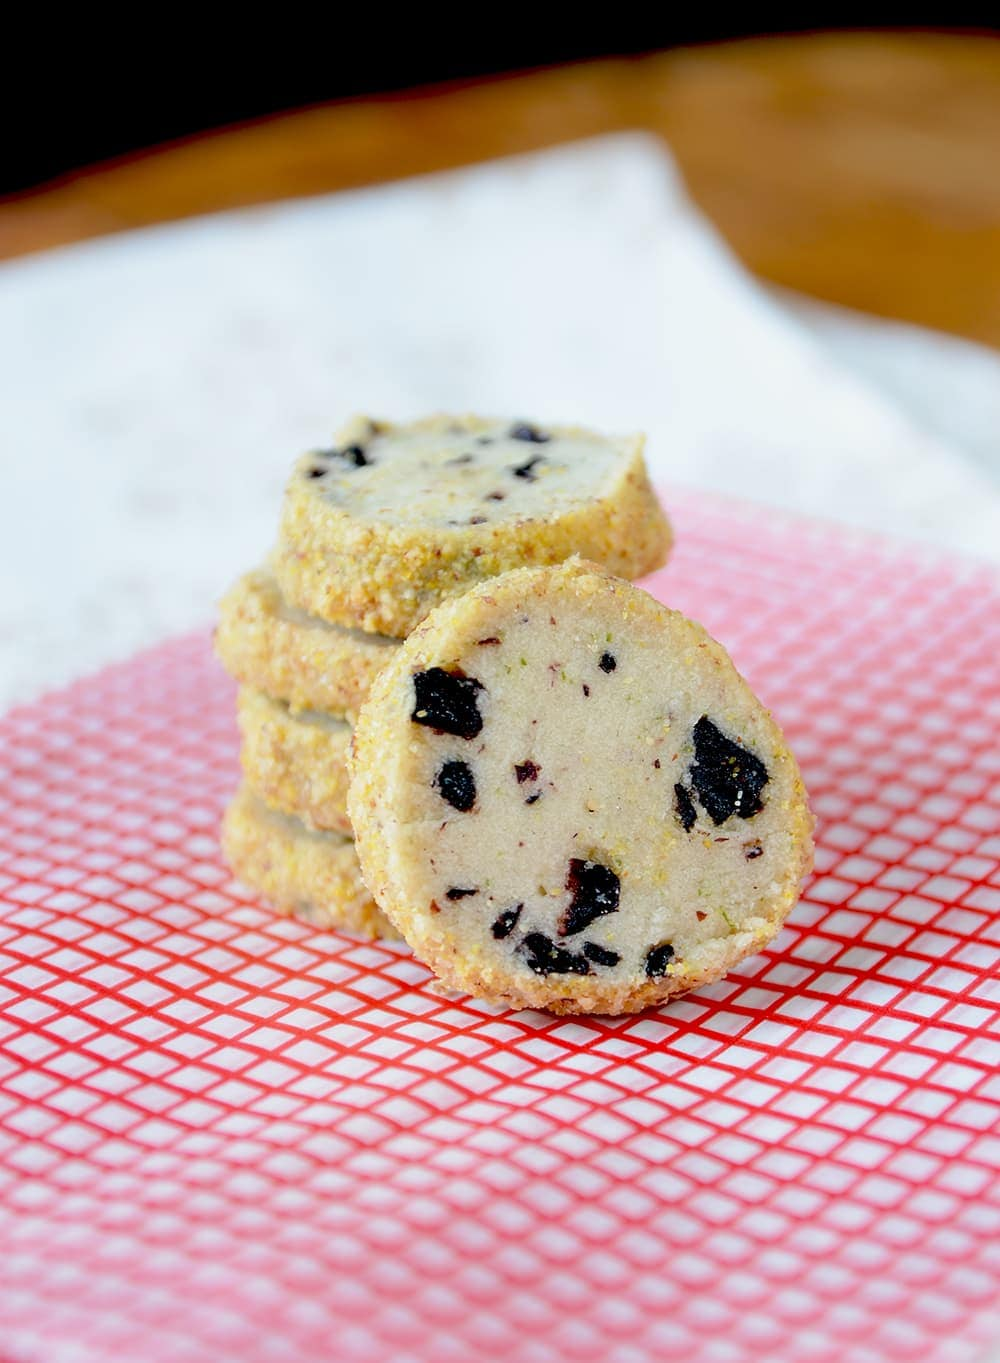 Blueberry Lime Shortbread is a great holiday icebox cookie. It's filled with dried blueberries and lime zest giving it a fresh, zippy flavor and coated in an almond cornmeal crumb for added texture and crunch.   vintagekitty.com